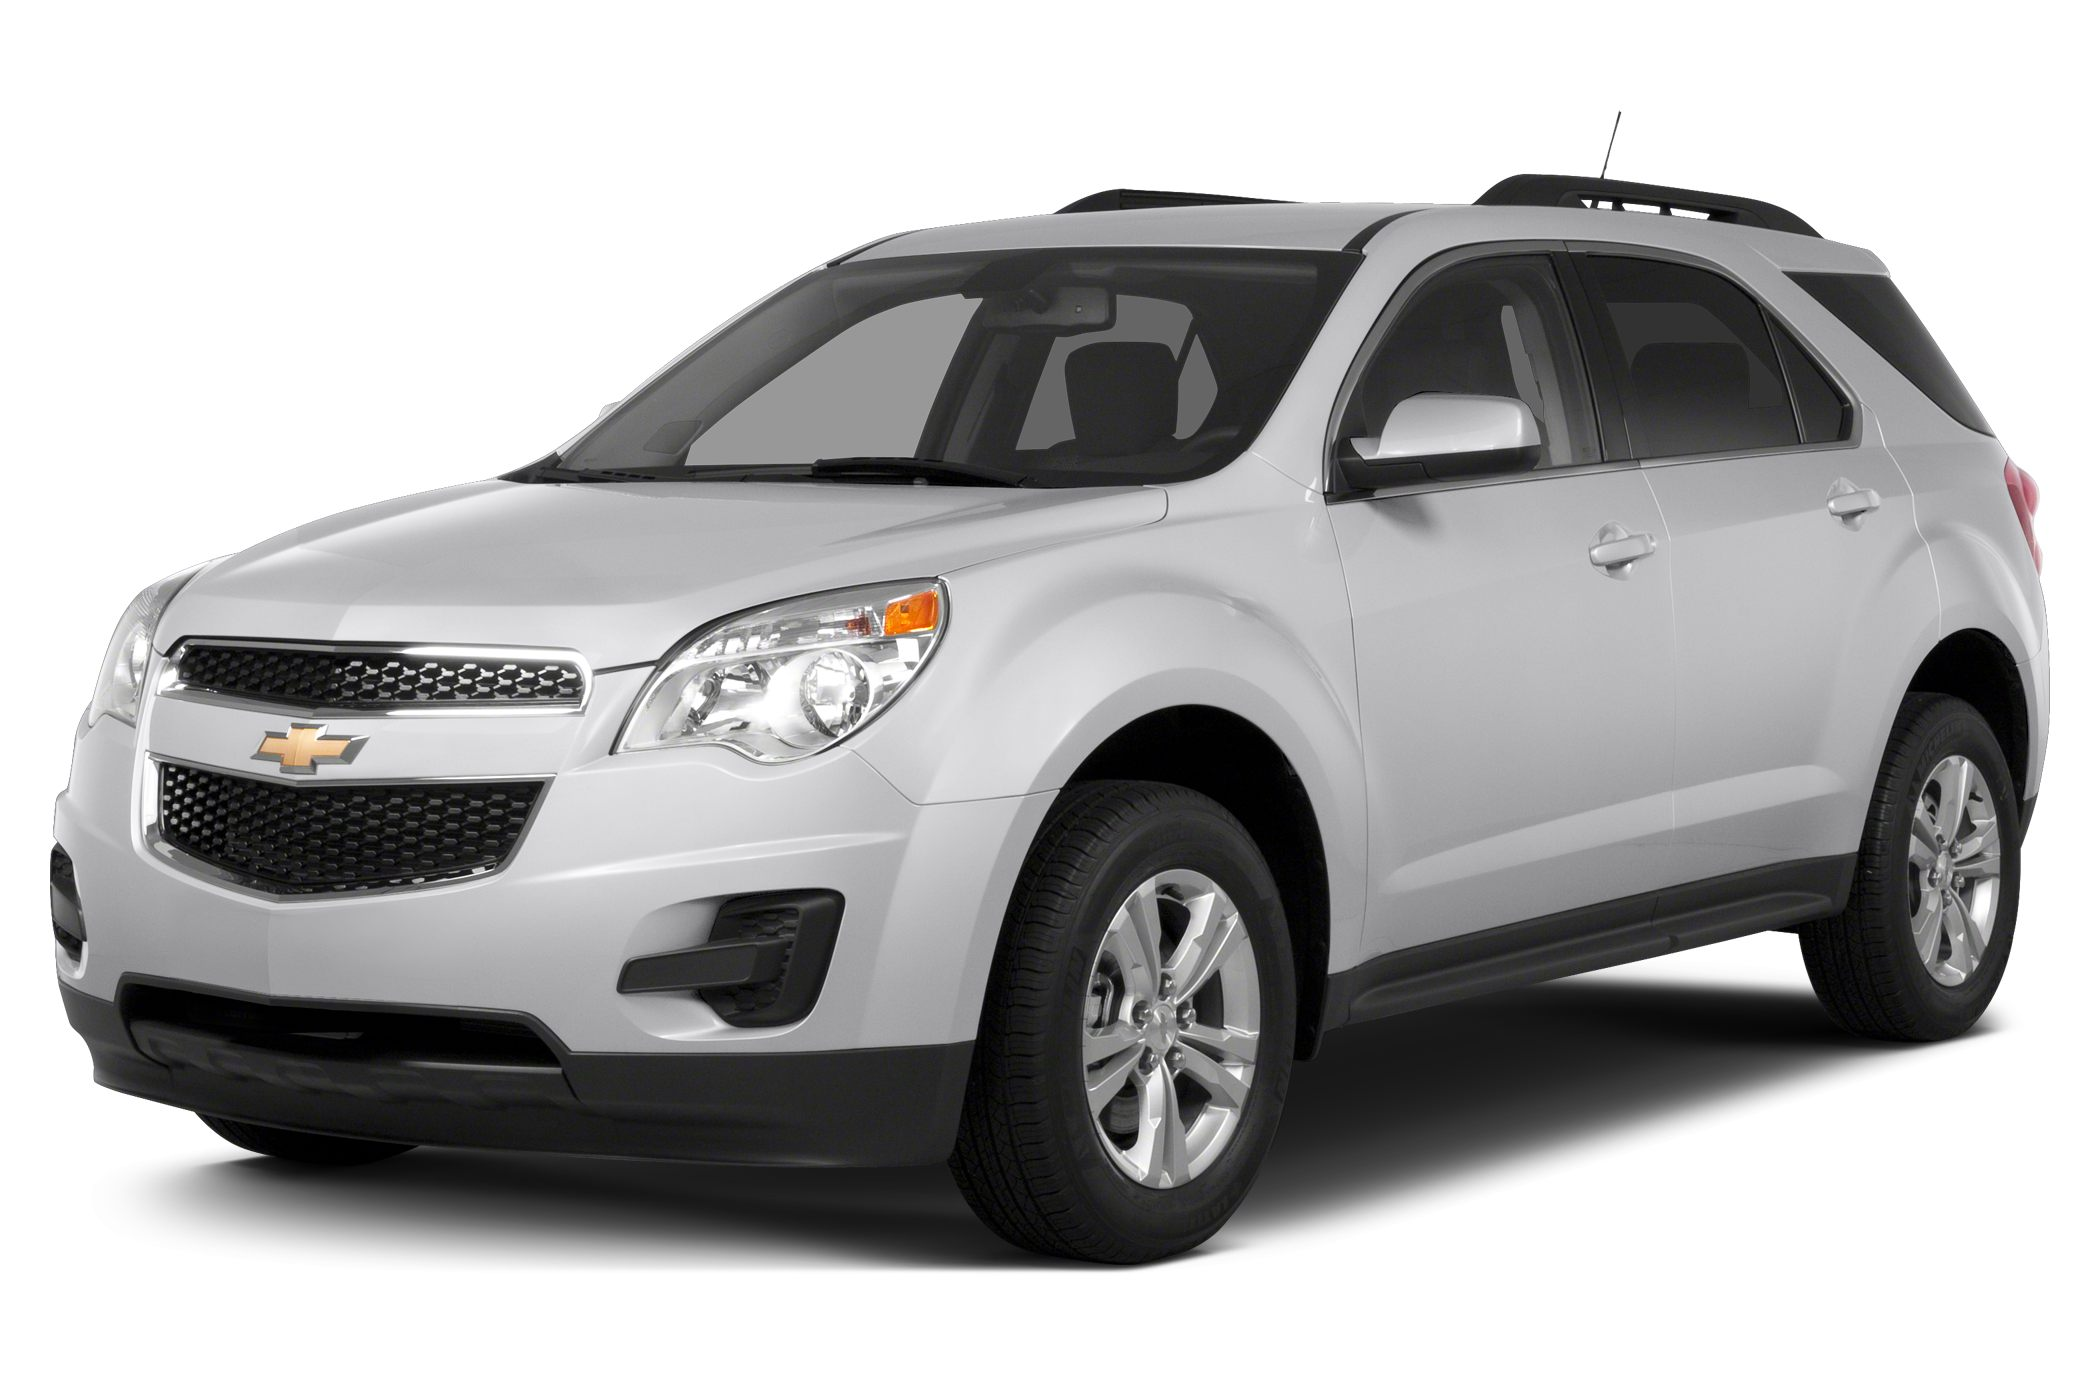 2015 Chevrolet Equinox 1LT SUV for sale in Knoxville for $27,995 with 0 miles.